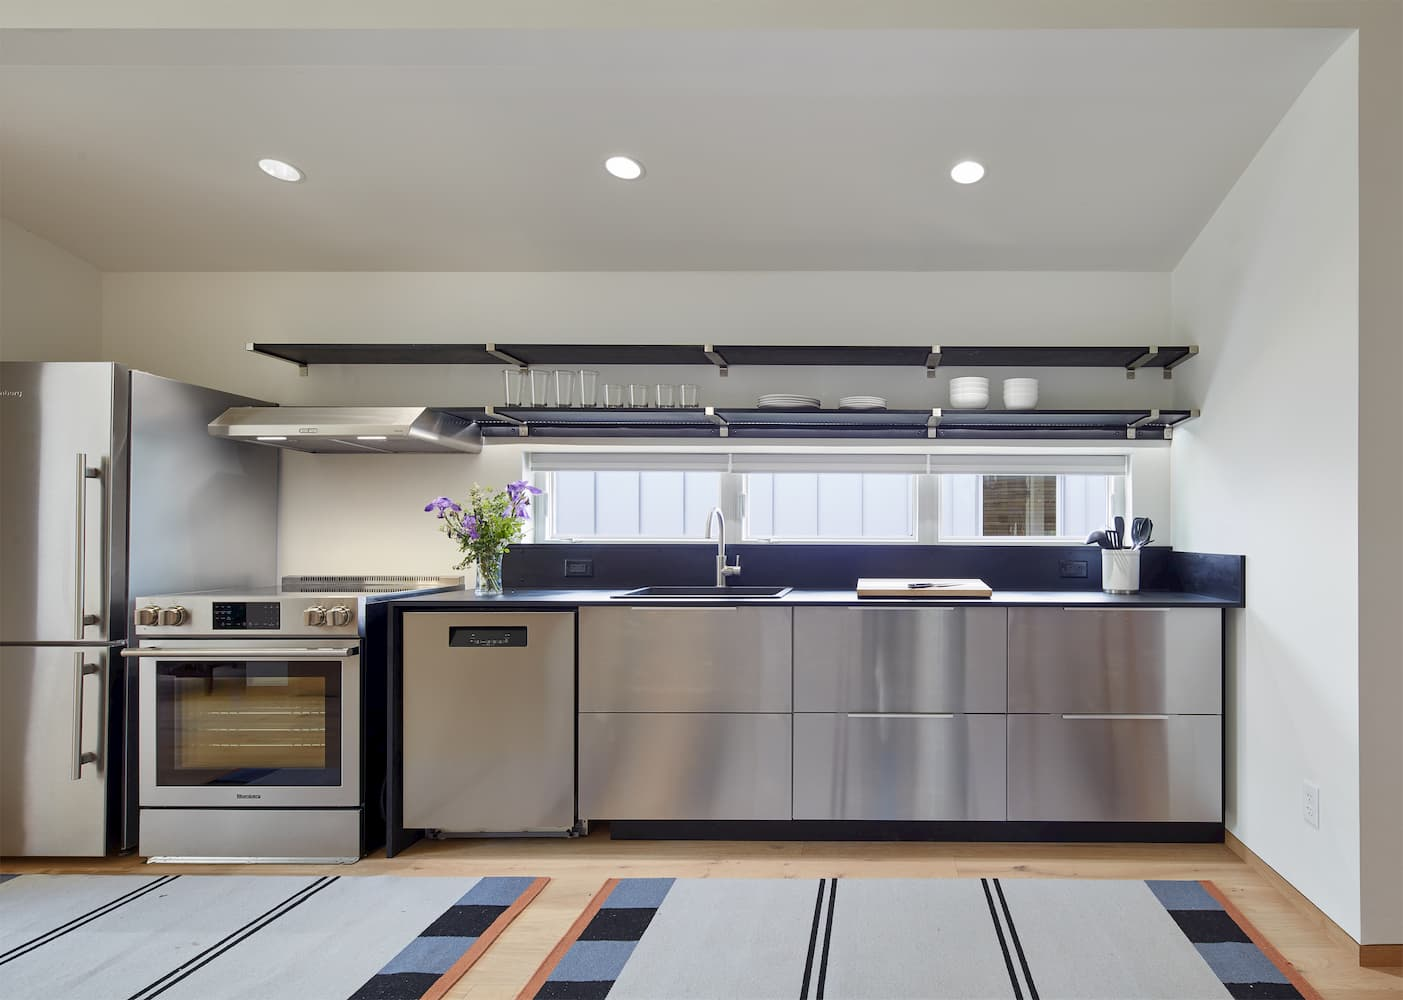 Industrial style kitchen with stainless steel appliances and cabinets with a long rectangle window above the counter top